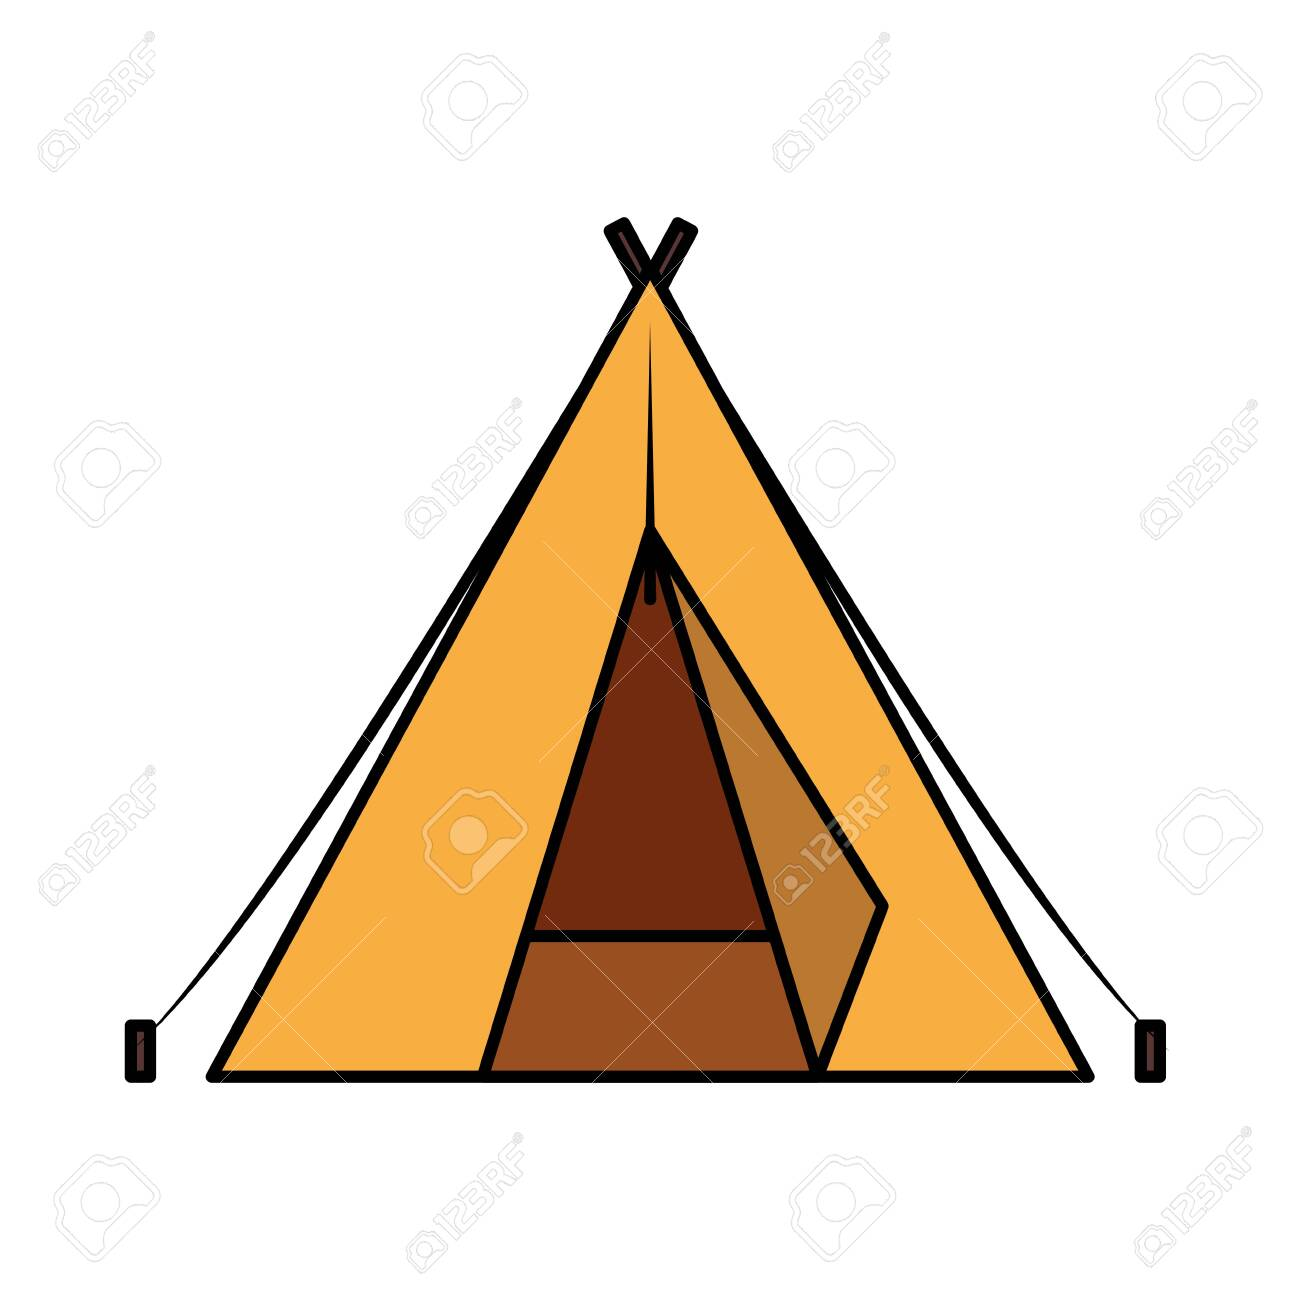 tent camping accessory isolated icon vector illustration design - 133966222